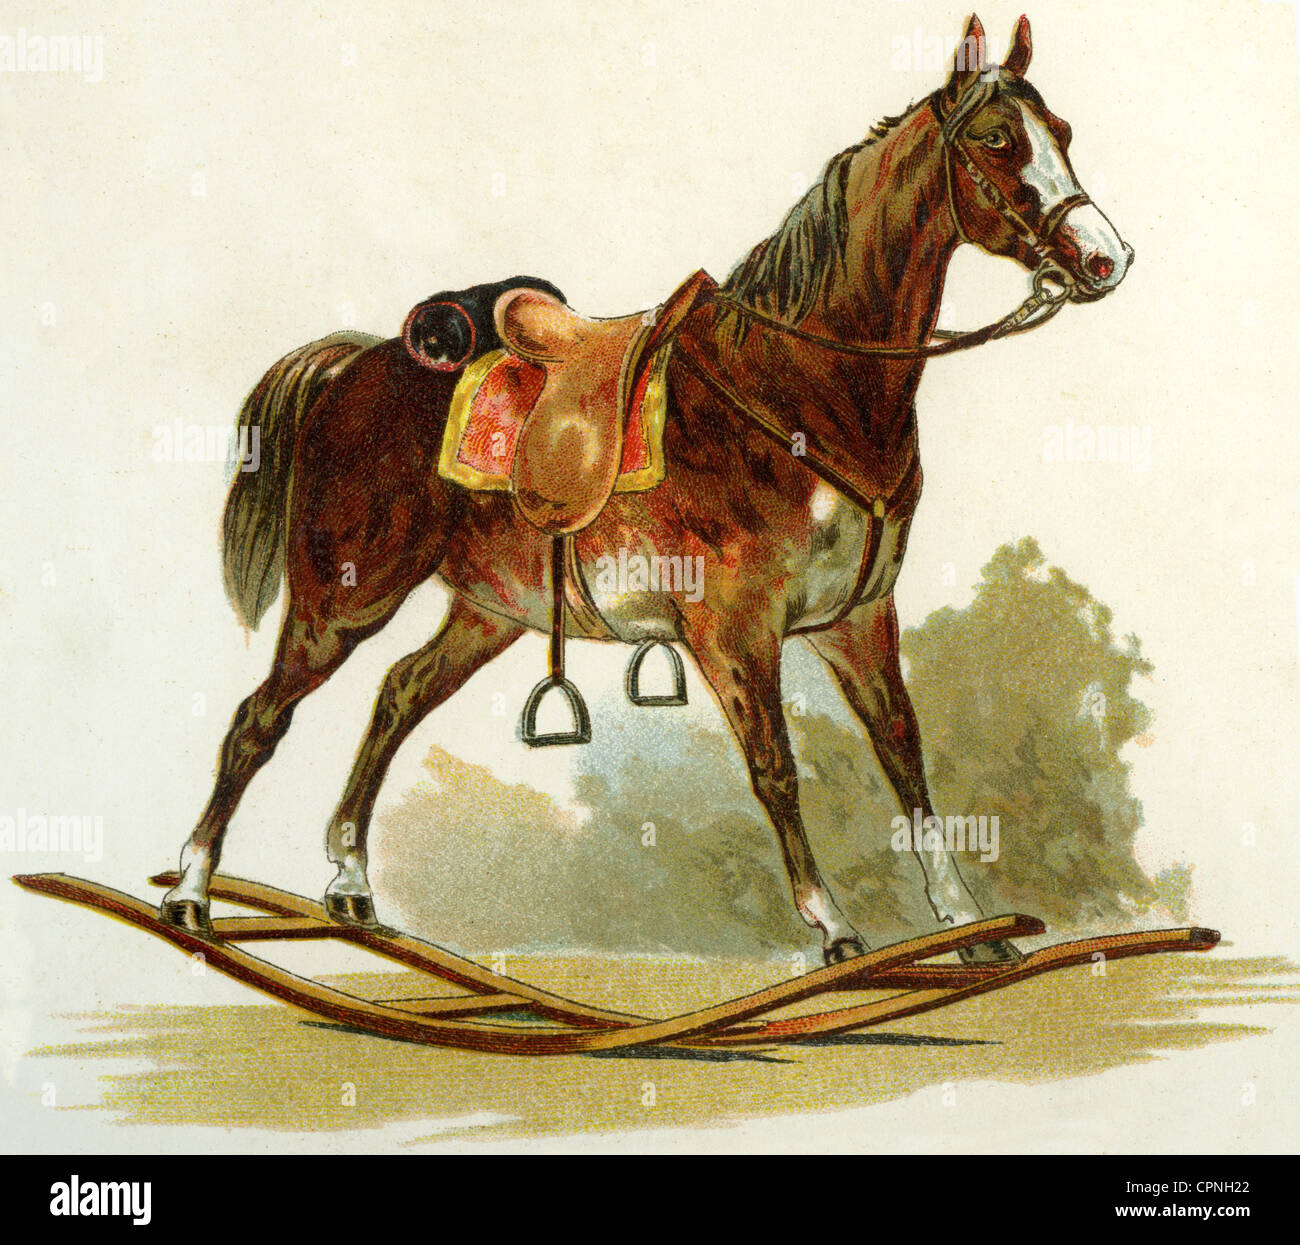 Antique Rocking Horse Illustration High Resolution Stock Photography And Images Alamy